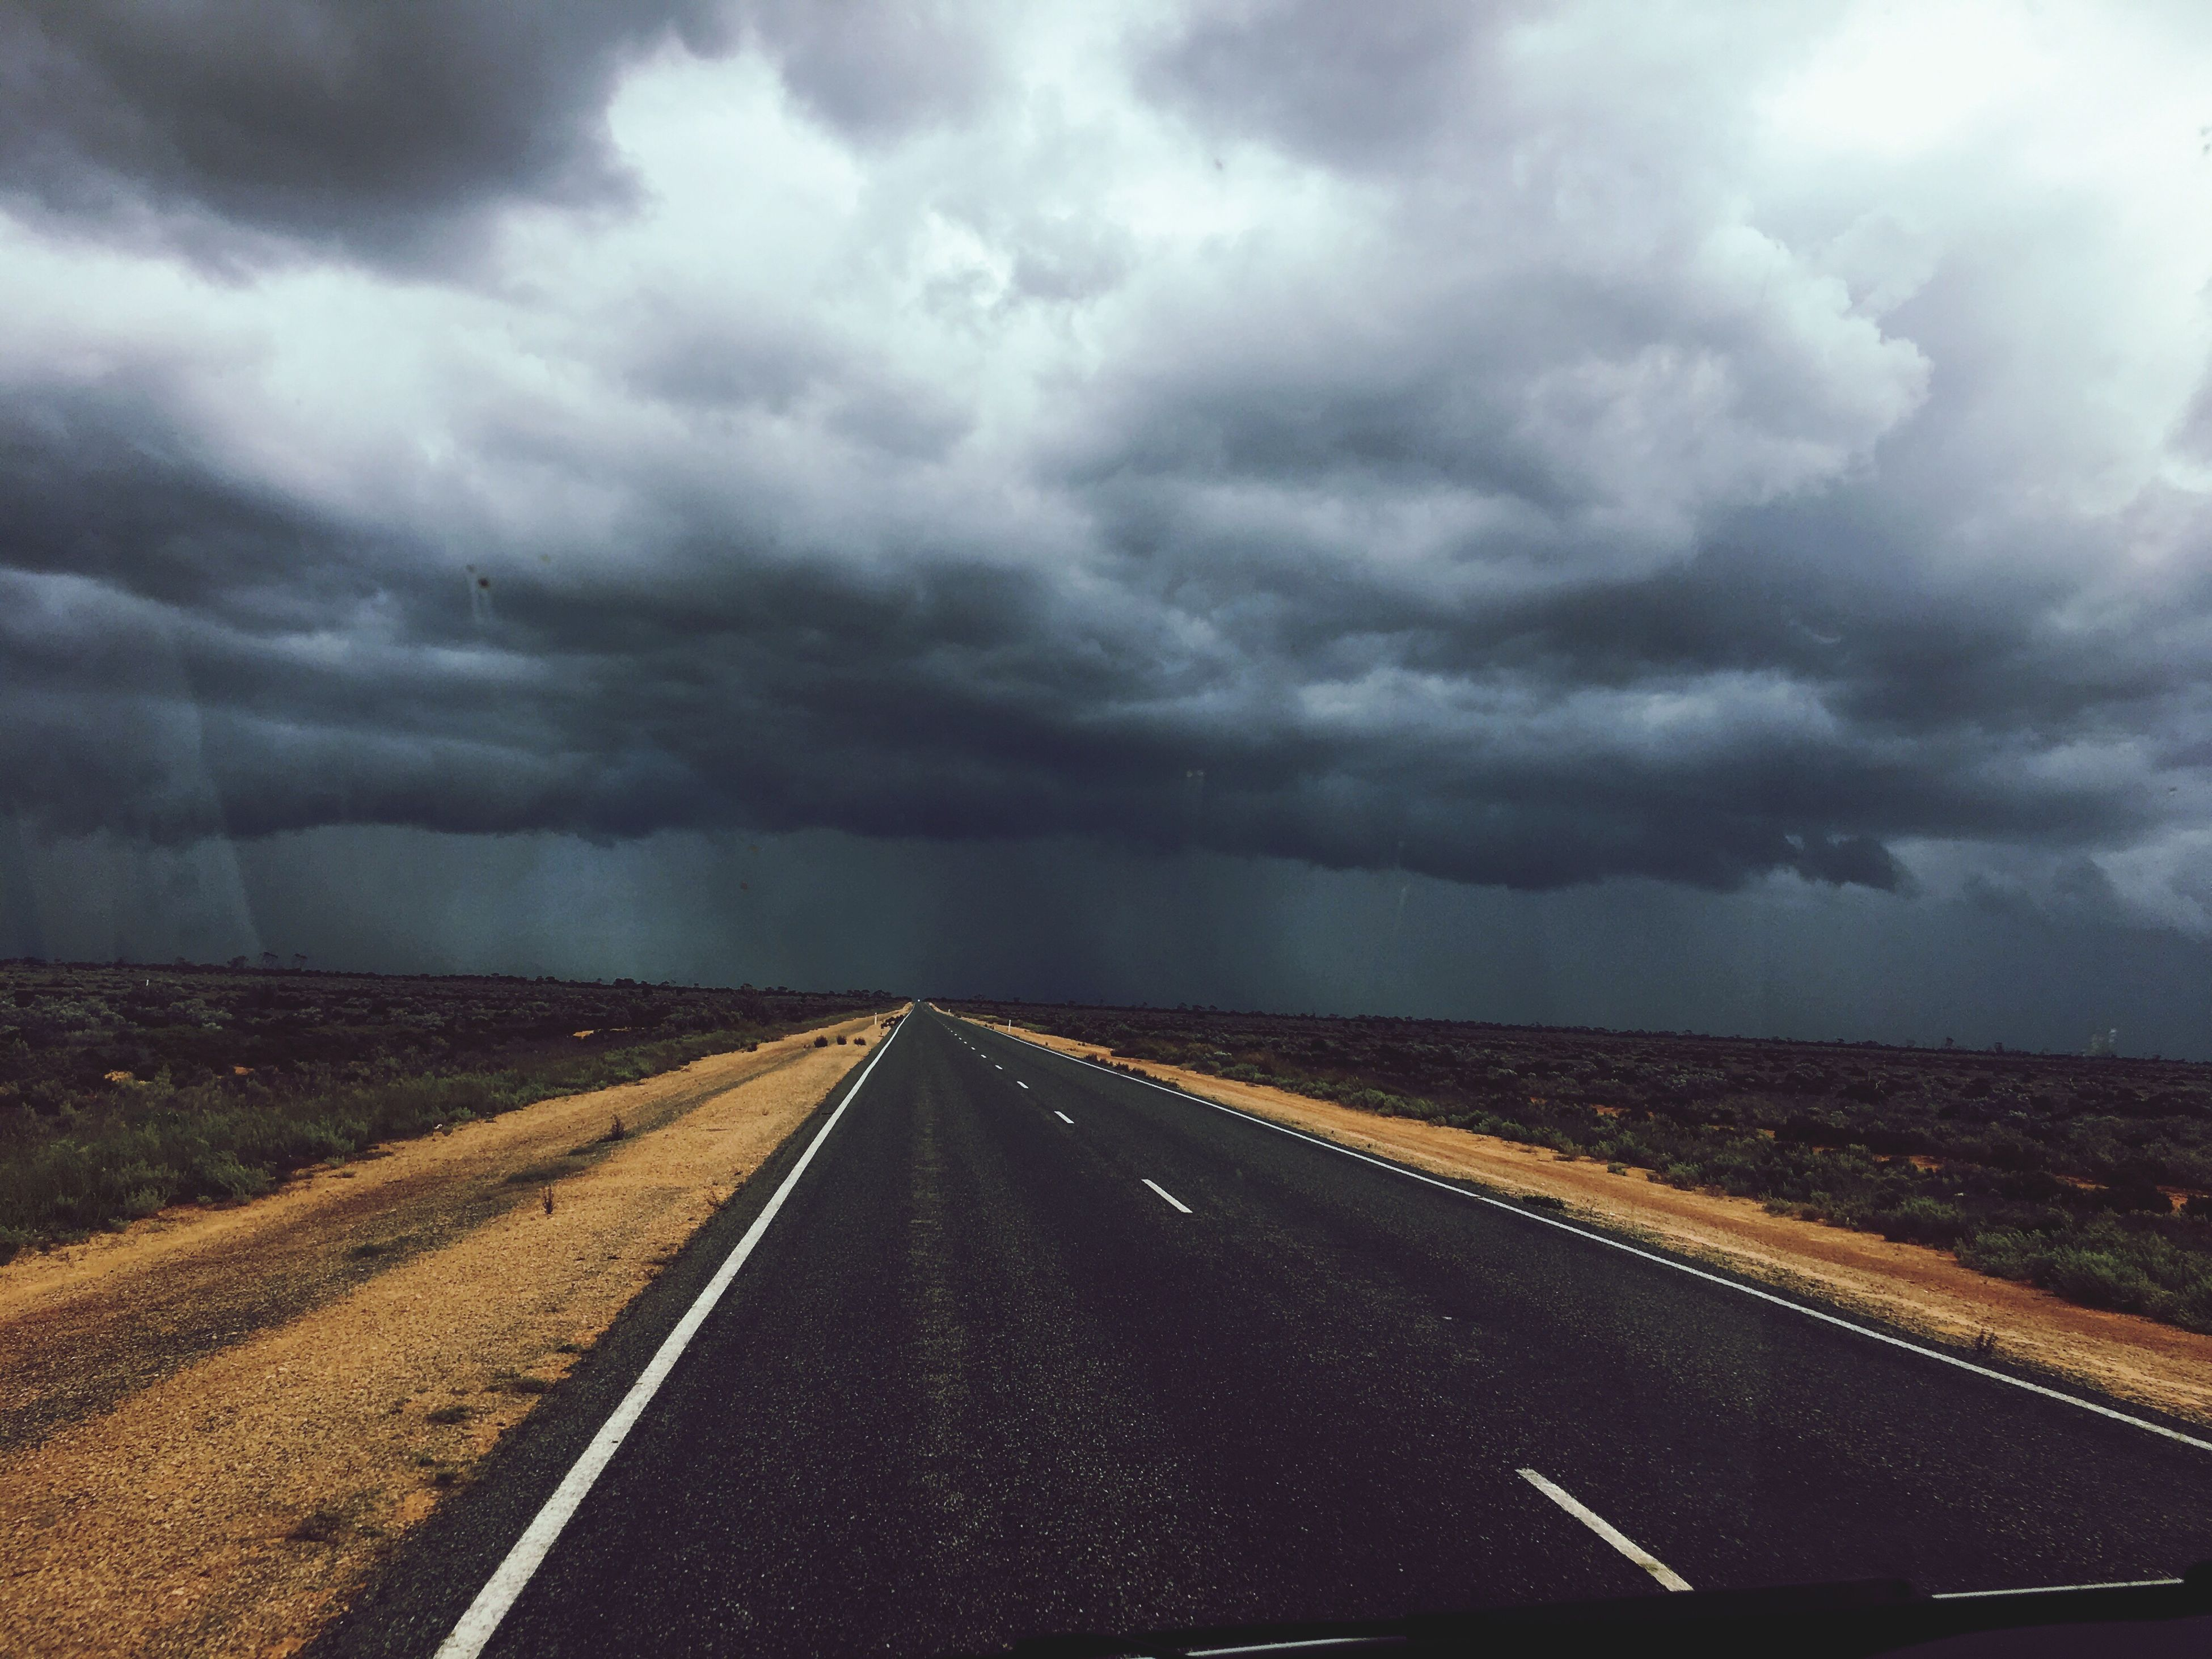 road, weather, the way forward, transportation, cloud - sky, diminishing perspective, sky, storm cloud, no people, landscape, outdoors, nature, day, scenics, beauty in nature